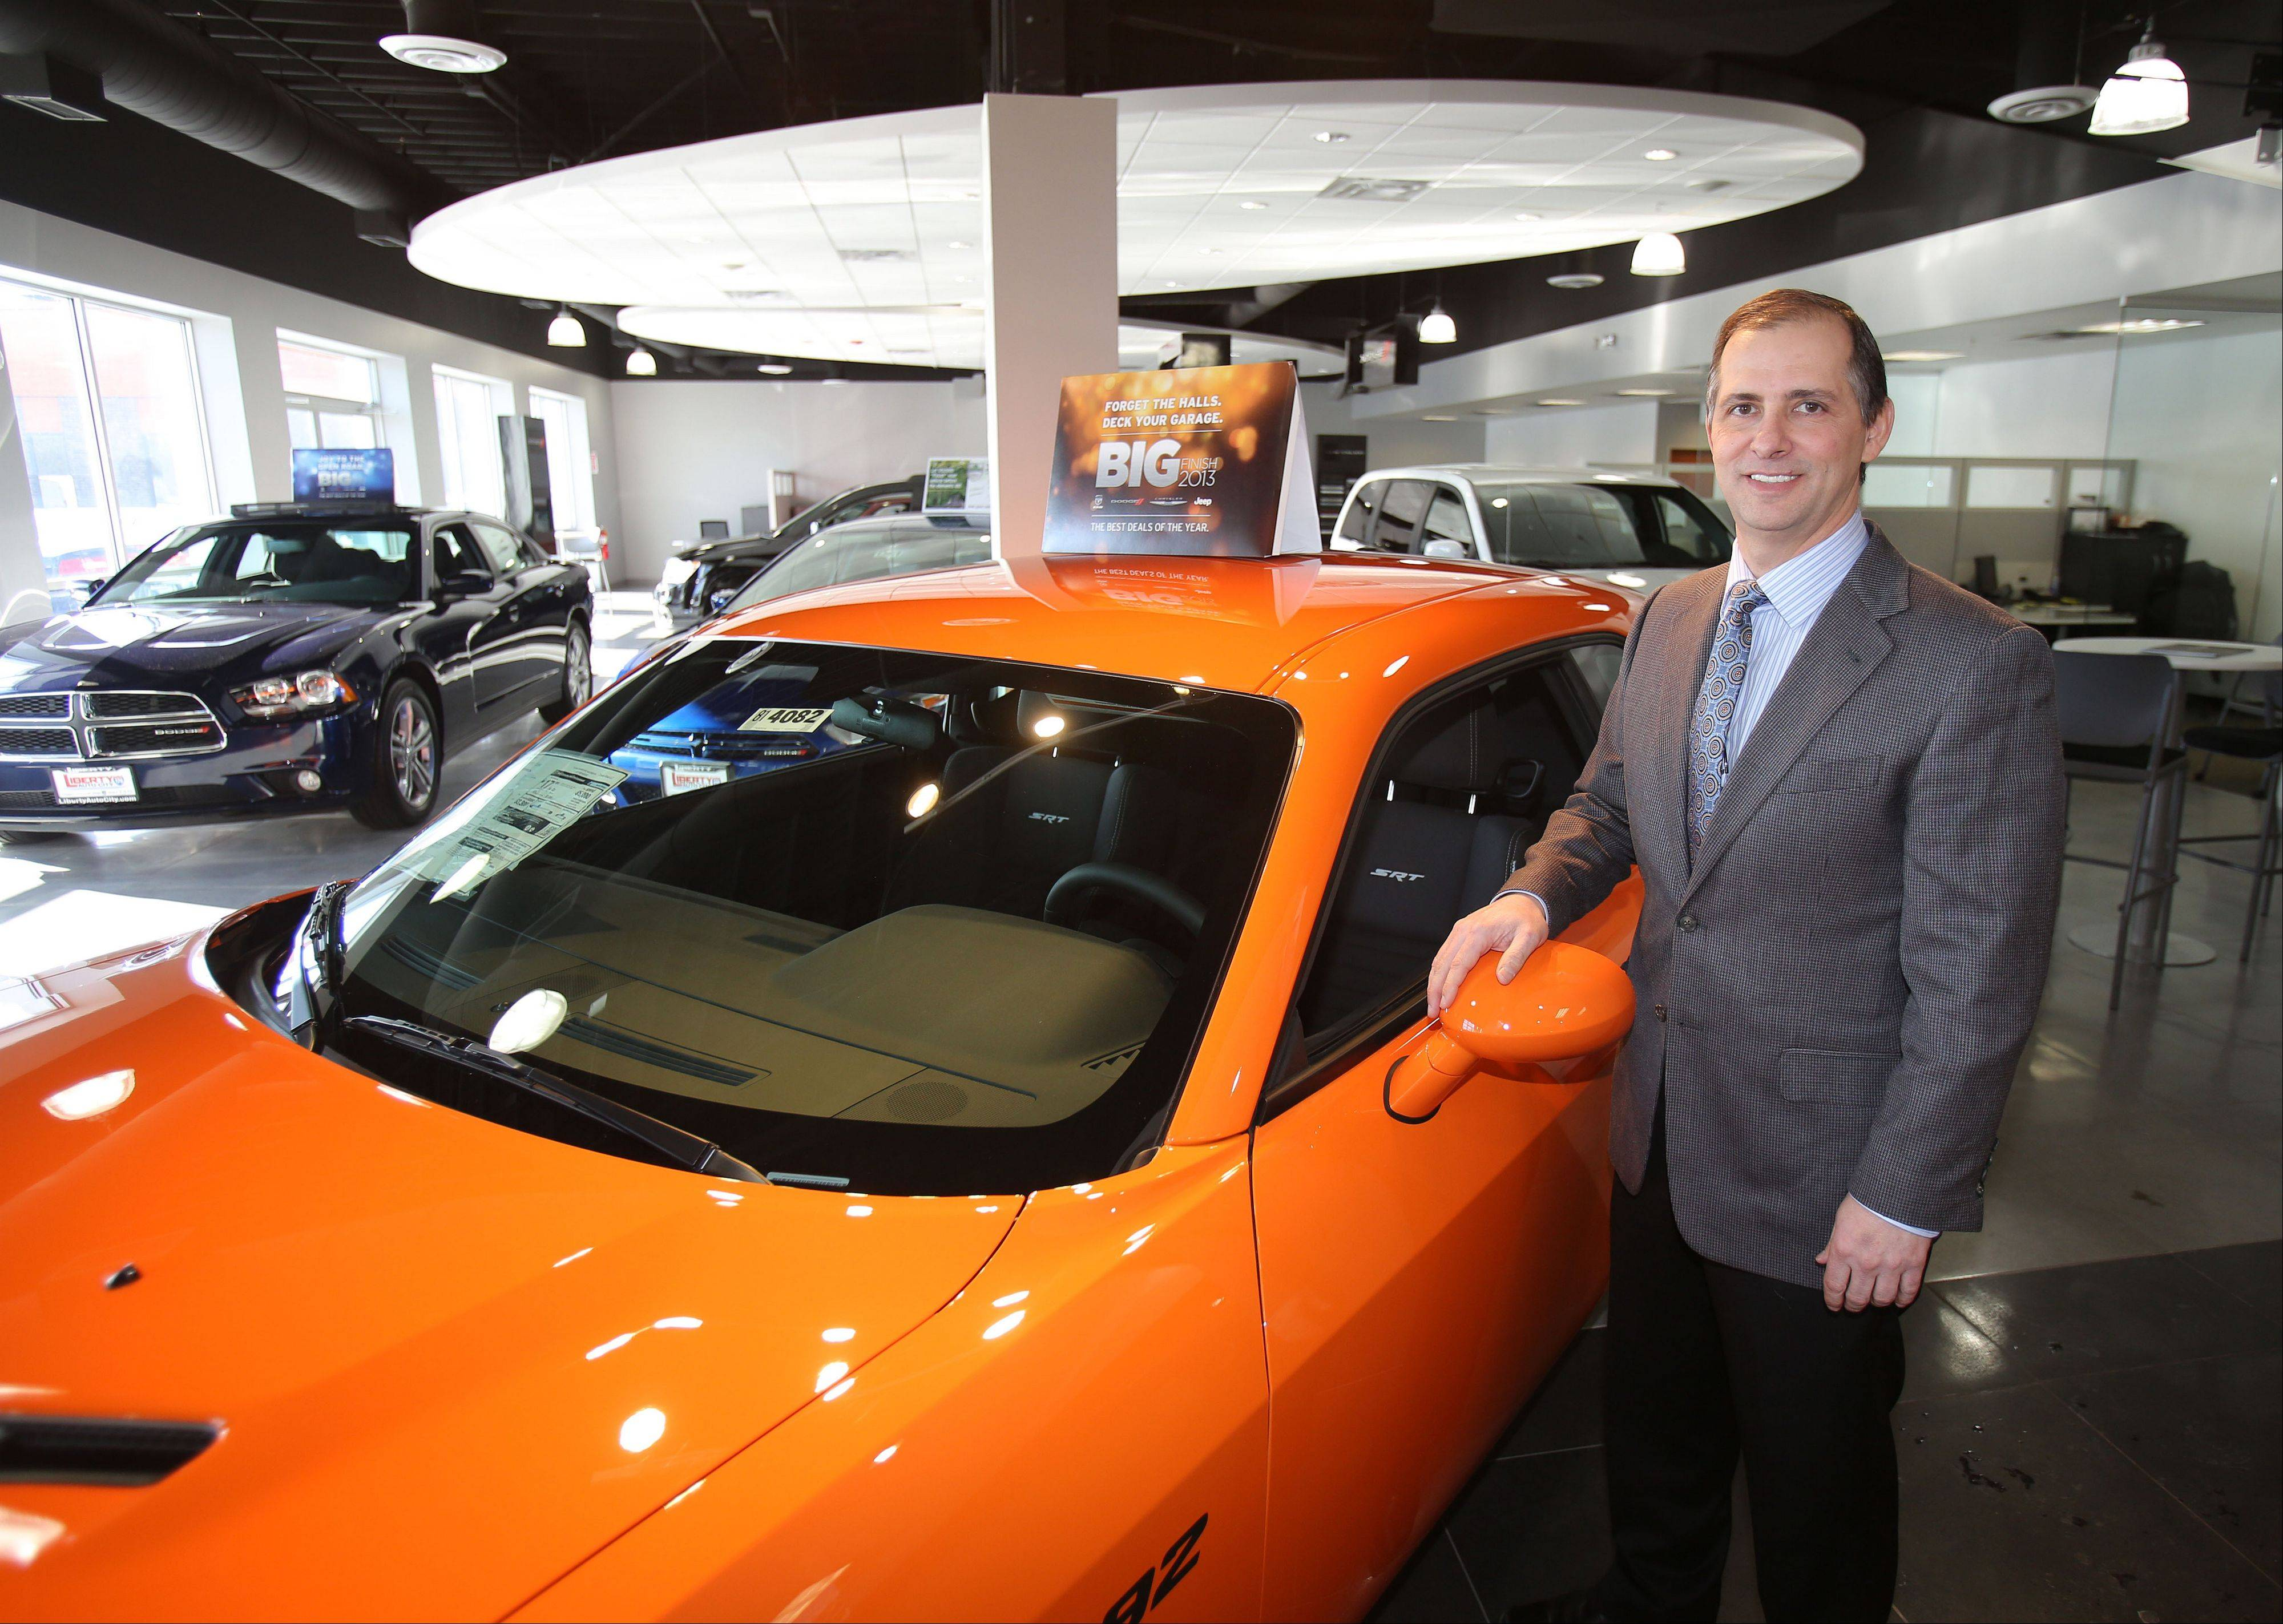 An enlarged showroom and customer lounge await buyers of new Chrysler, Dodge, Jeep, Ram Trucks, Subaru and Mazda vehicles at Liberty Auto City in Libertyville, says owner Joe Massarelli.